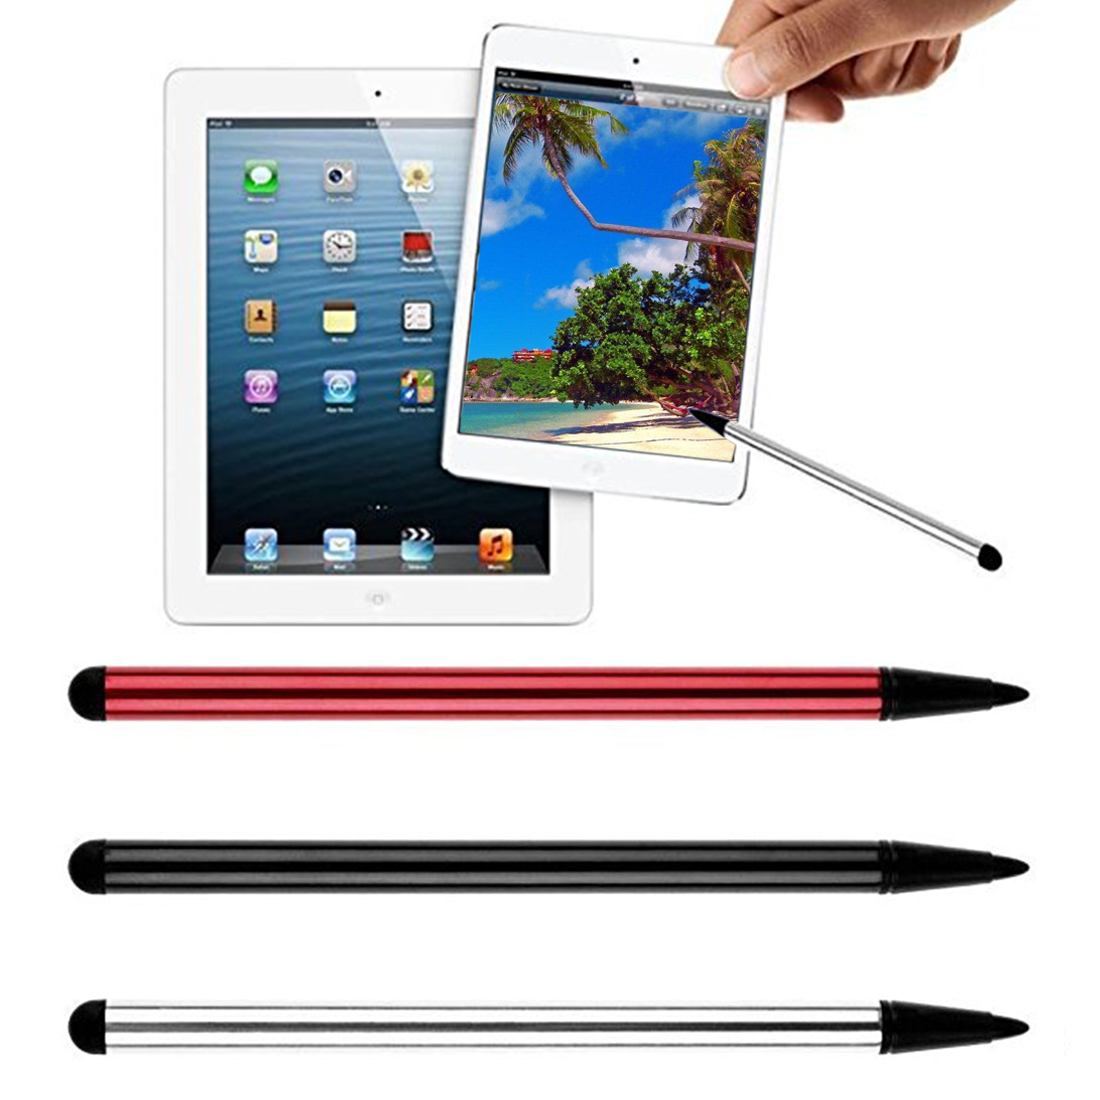 Caneta Stylus Universal capacitiva Stylus Pen Tablet TouchScreen Para iPad iPhone Para Samsung Mobile Phone Tablet PC Pocket PC